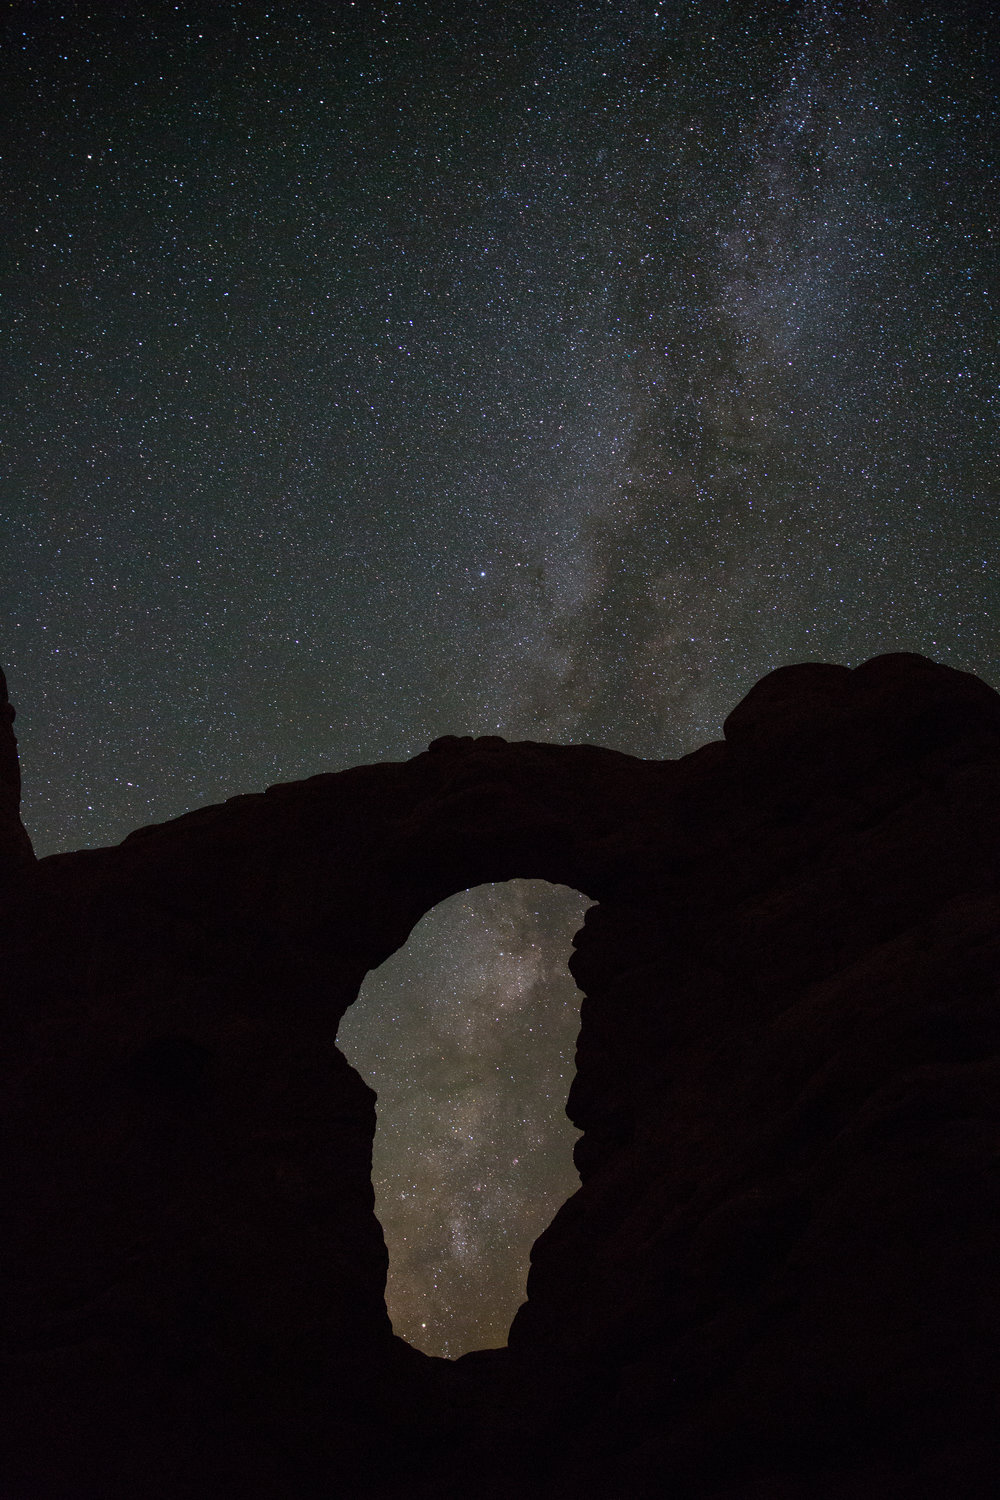 Astrophotography, Photography, Night Photography, Turret Arch, Turret At Night, Galaxy, Milky Way, Adventure, Define Fettle,